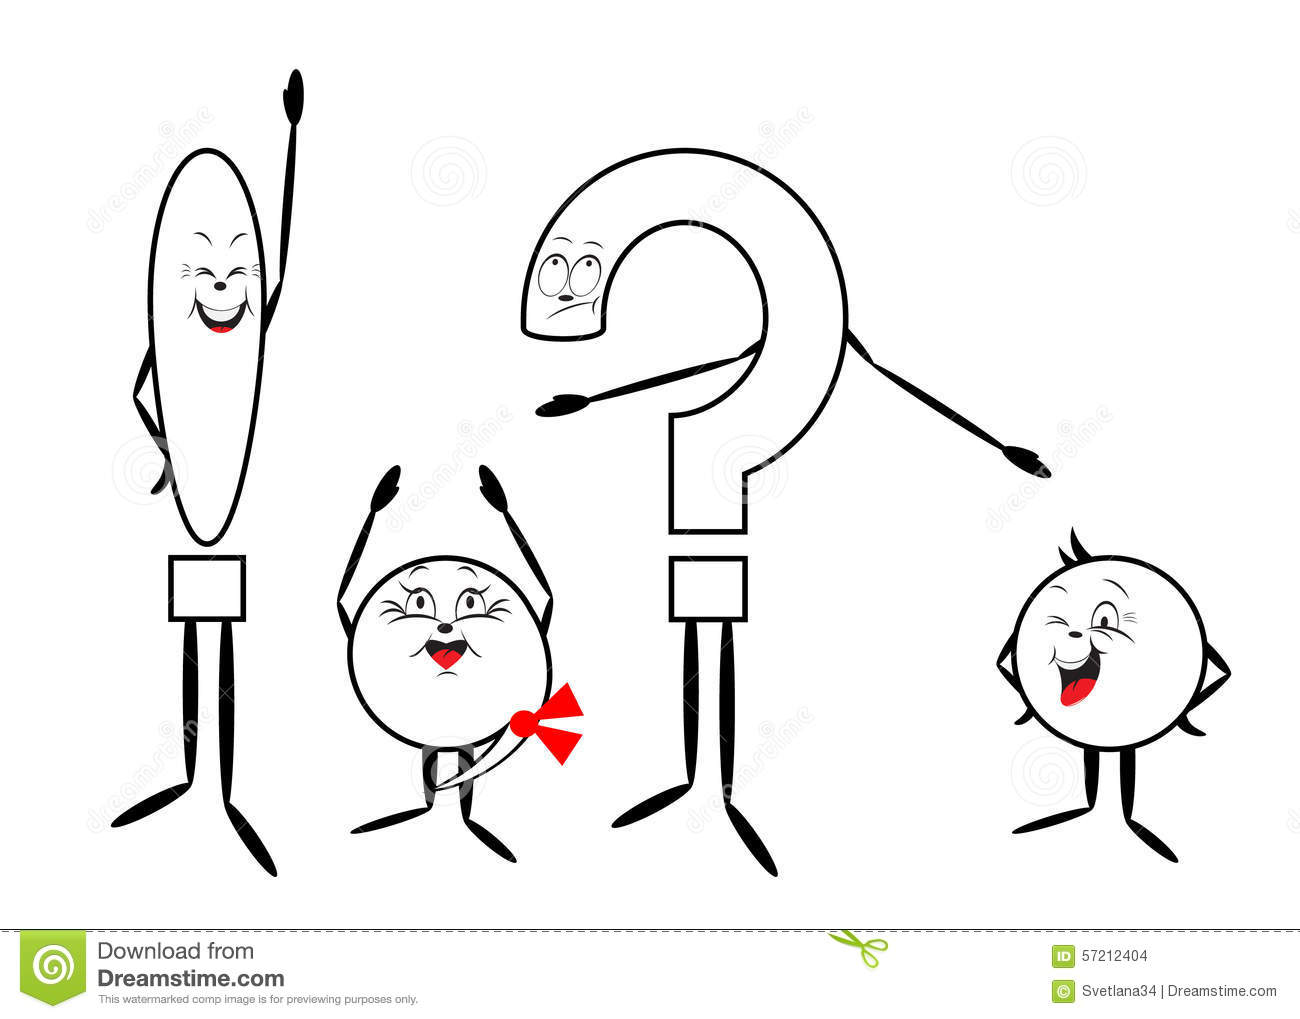 Question Punctuation Mark Punctuation marks